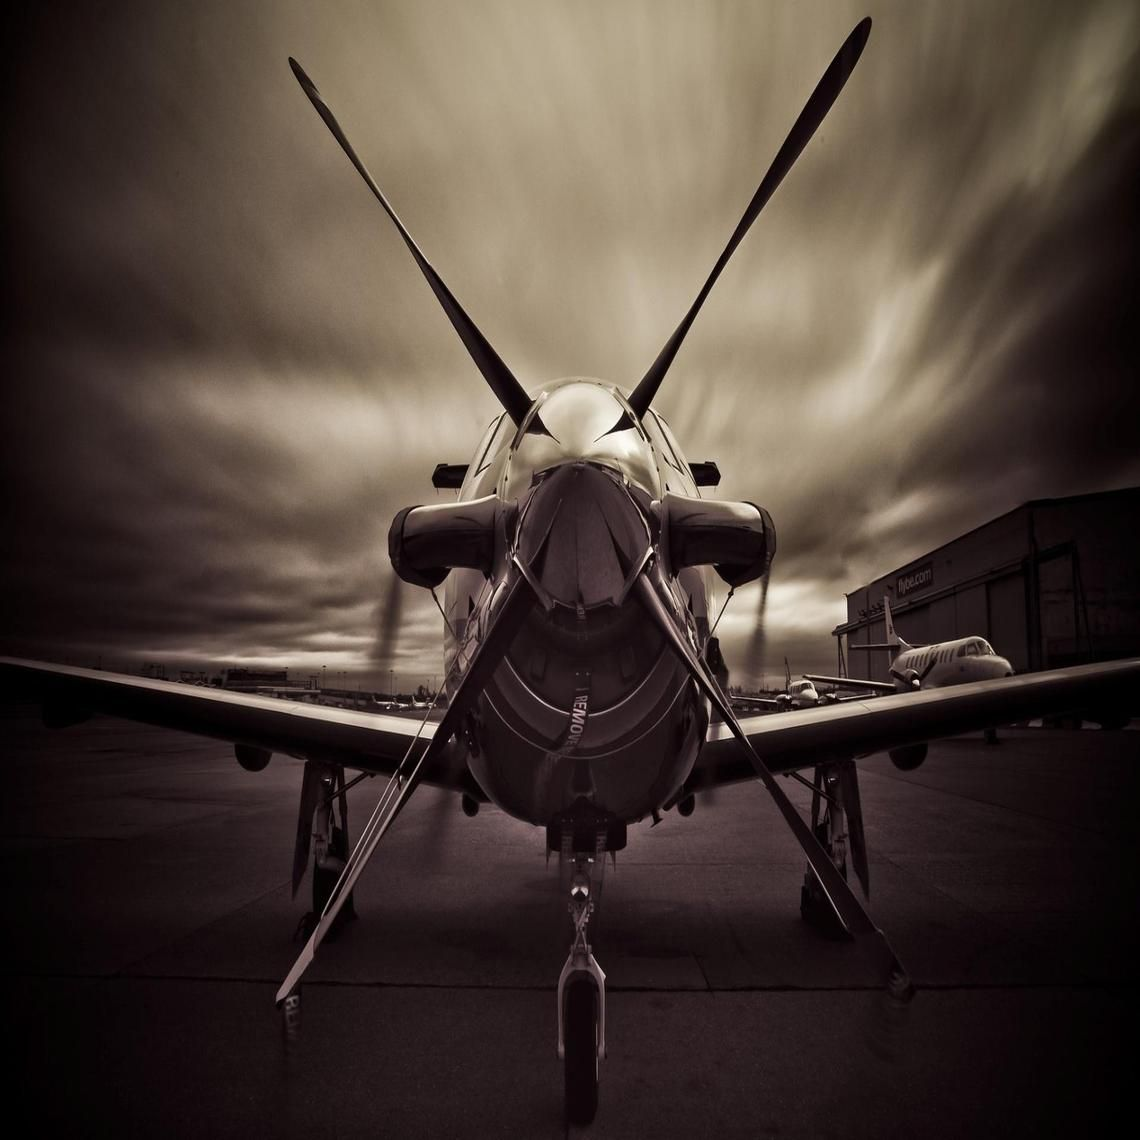 Pilatus Pc 12 Turboprop Aircraft Airplane Art Plane